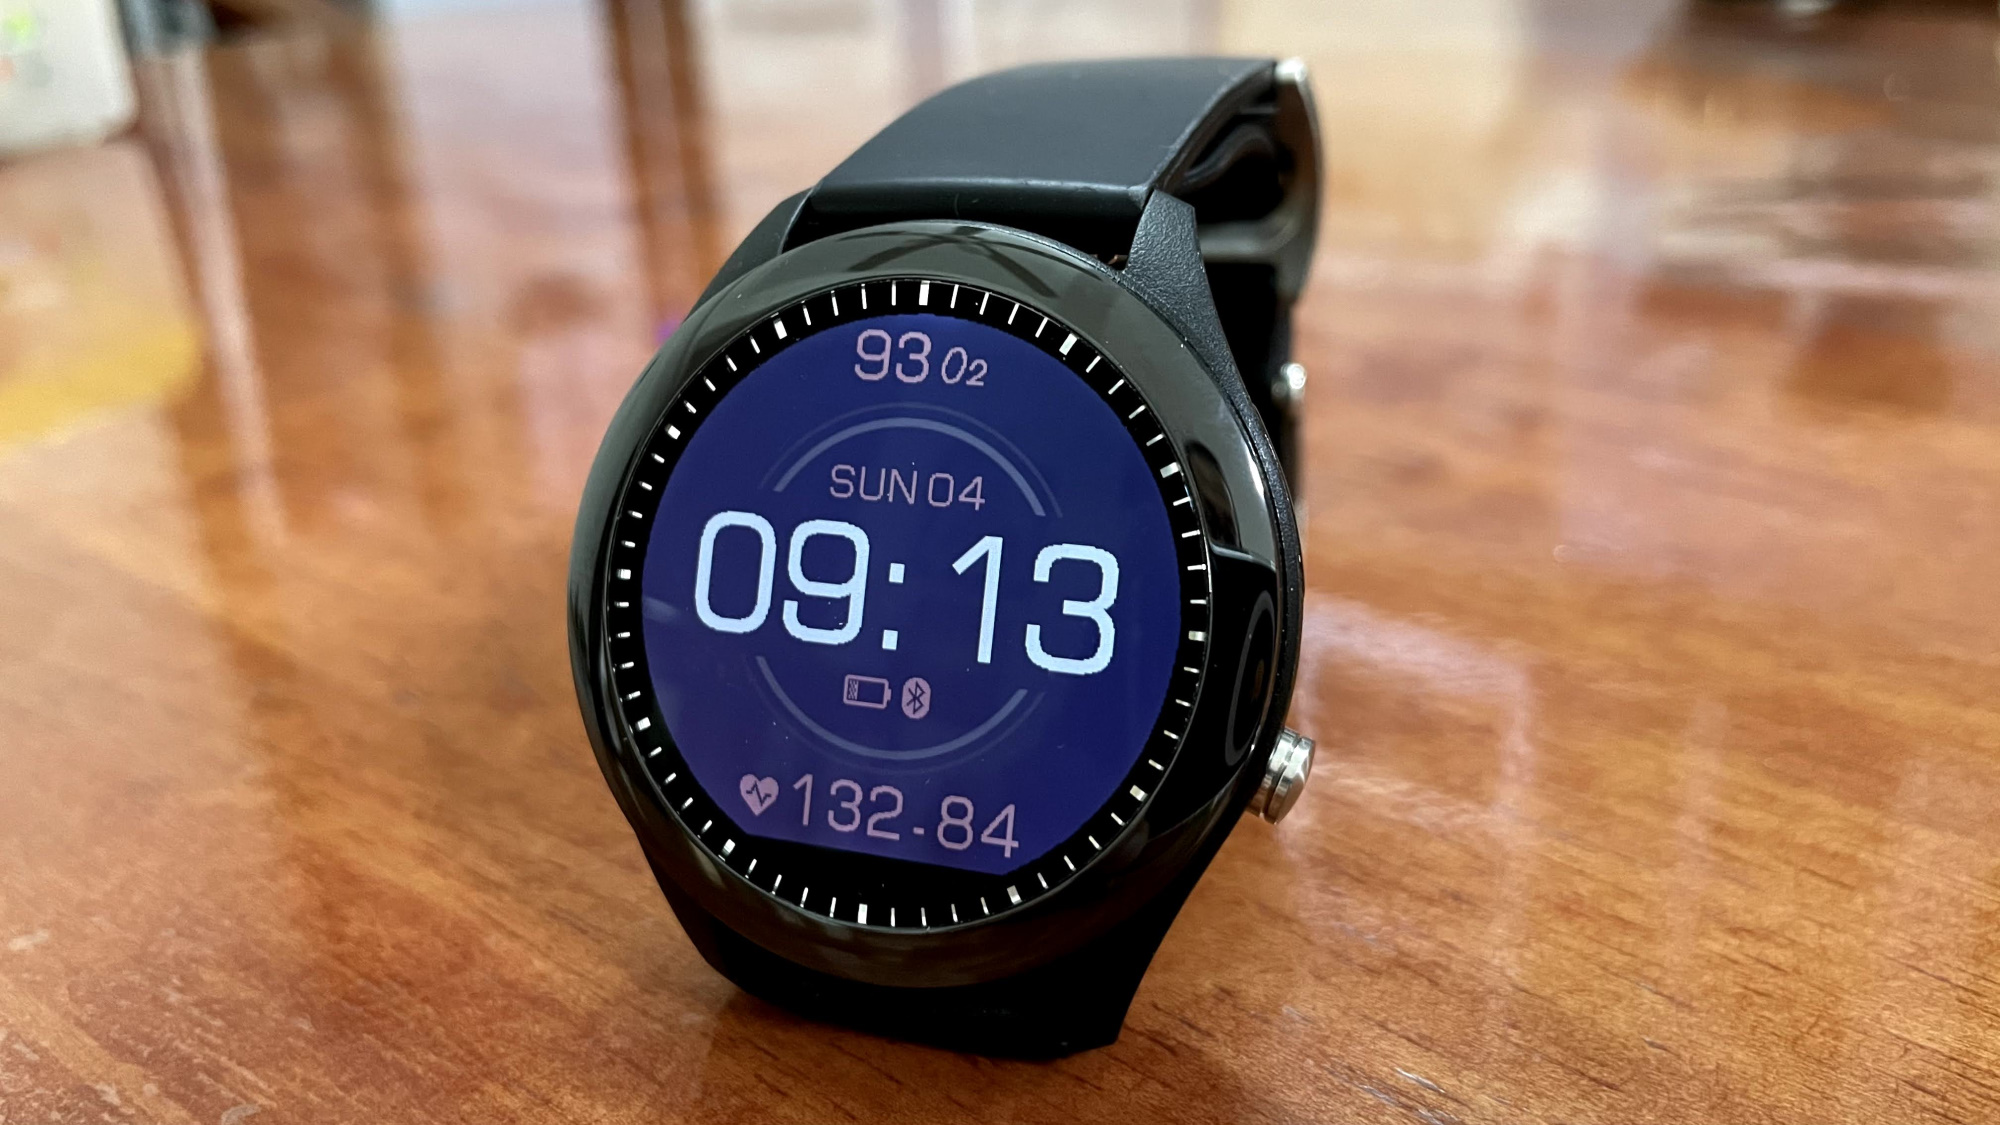 Asys VivoWatch SP